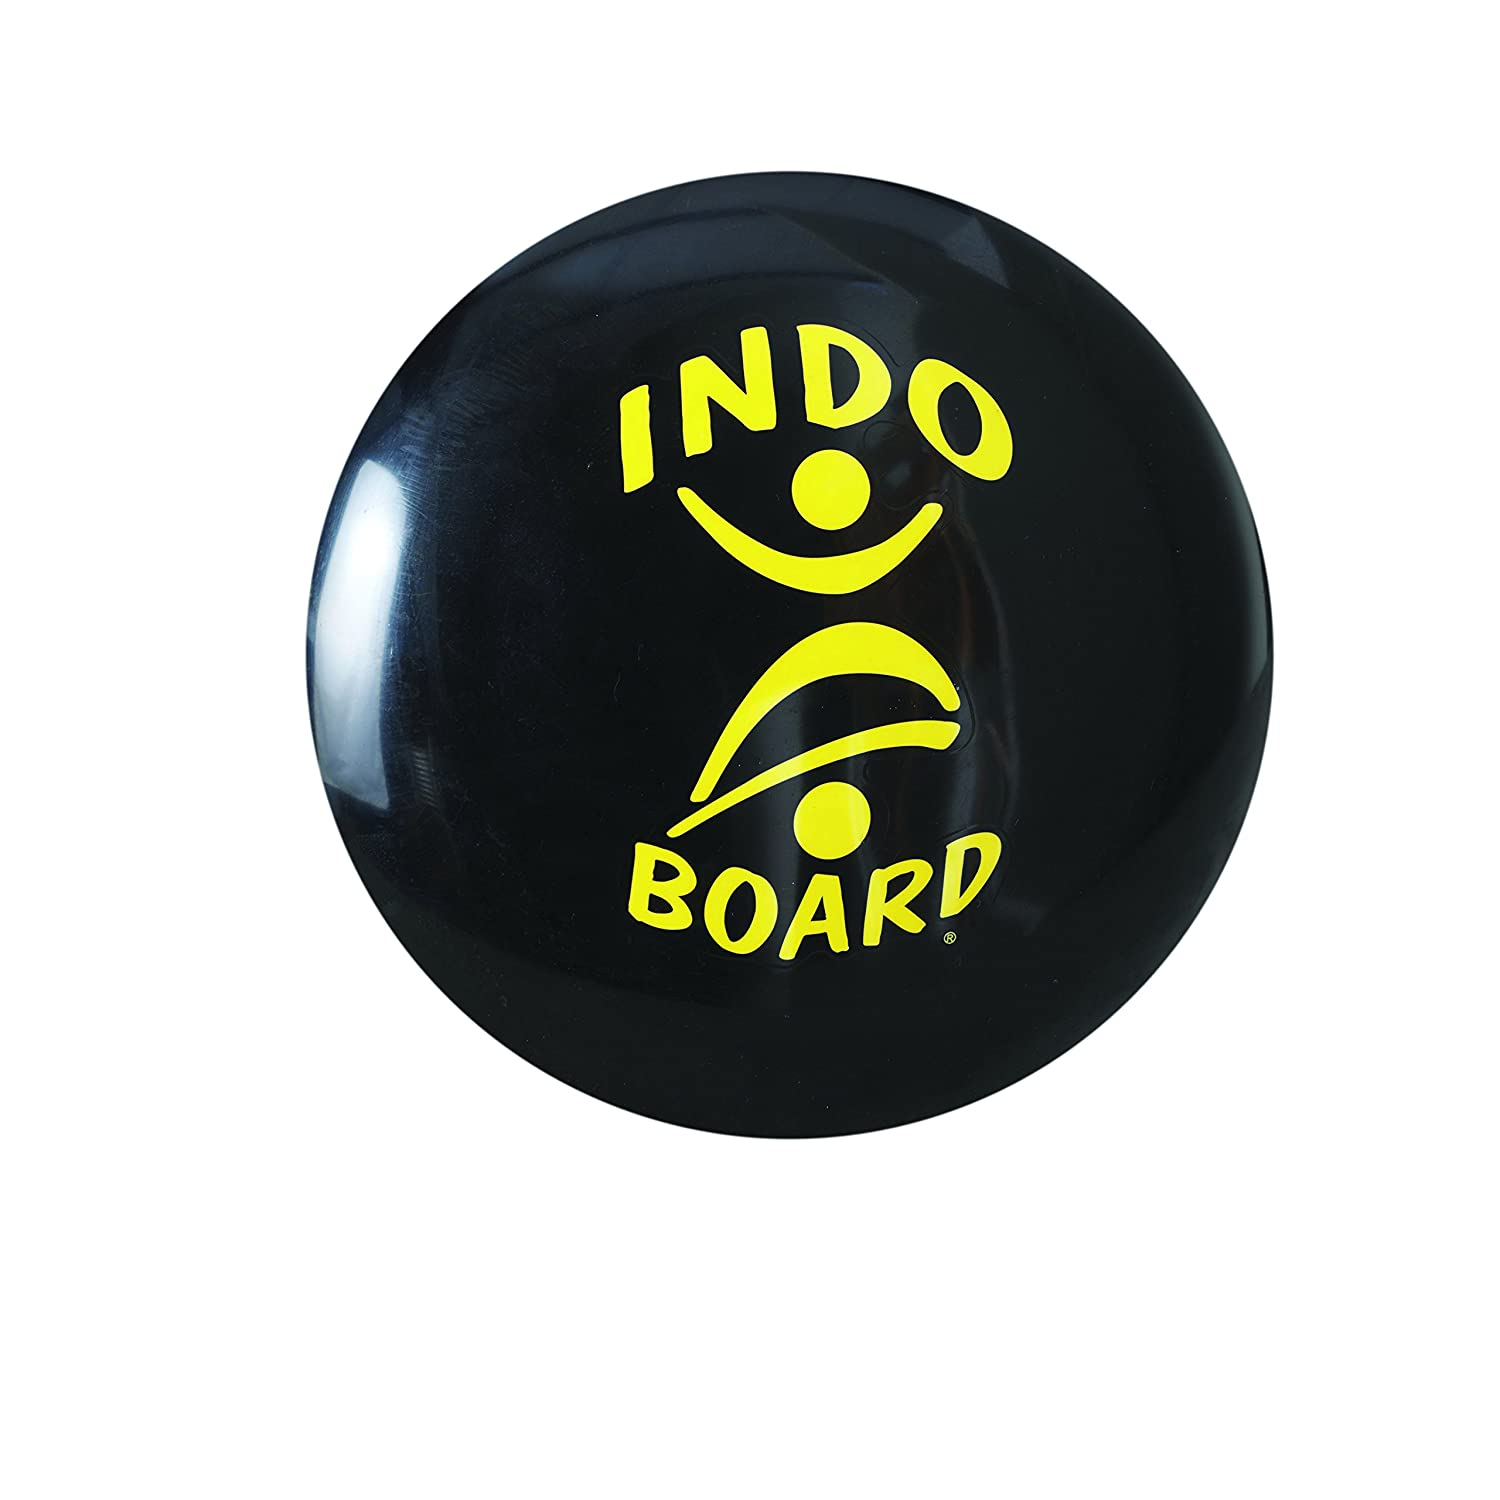 INDO BOARD IndoFLO Cushion 14 Diameter – Inflatable and Fully Adjustable Without A Pump – Use for Balance Board, Standing Desk or Physical Therapy.